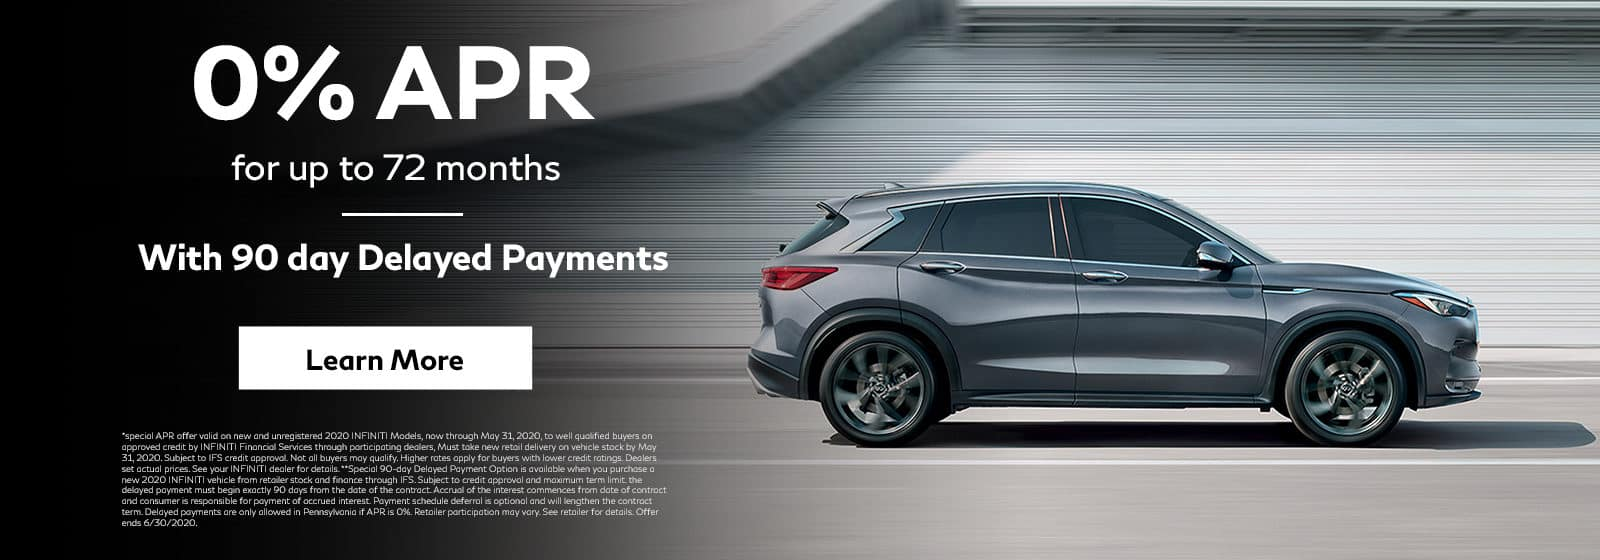 0% APR for 72 mos